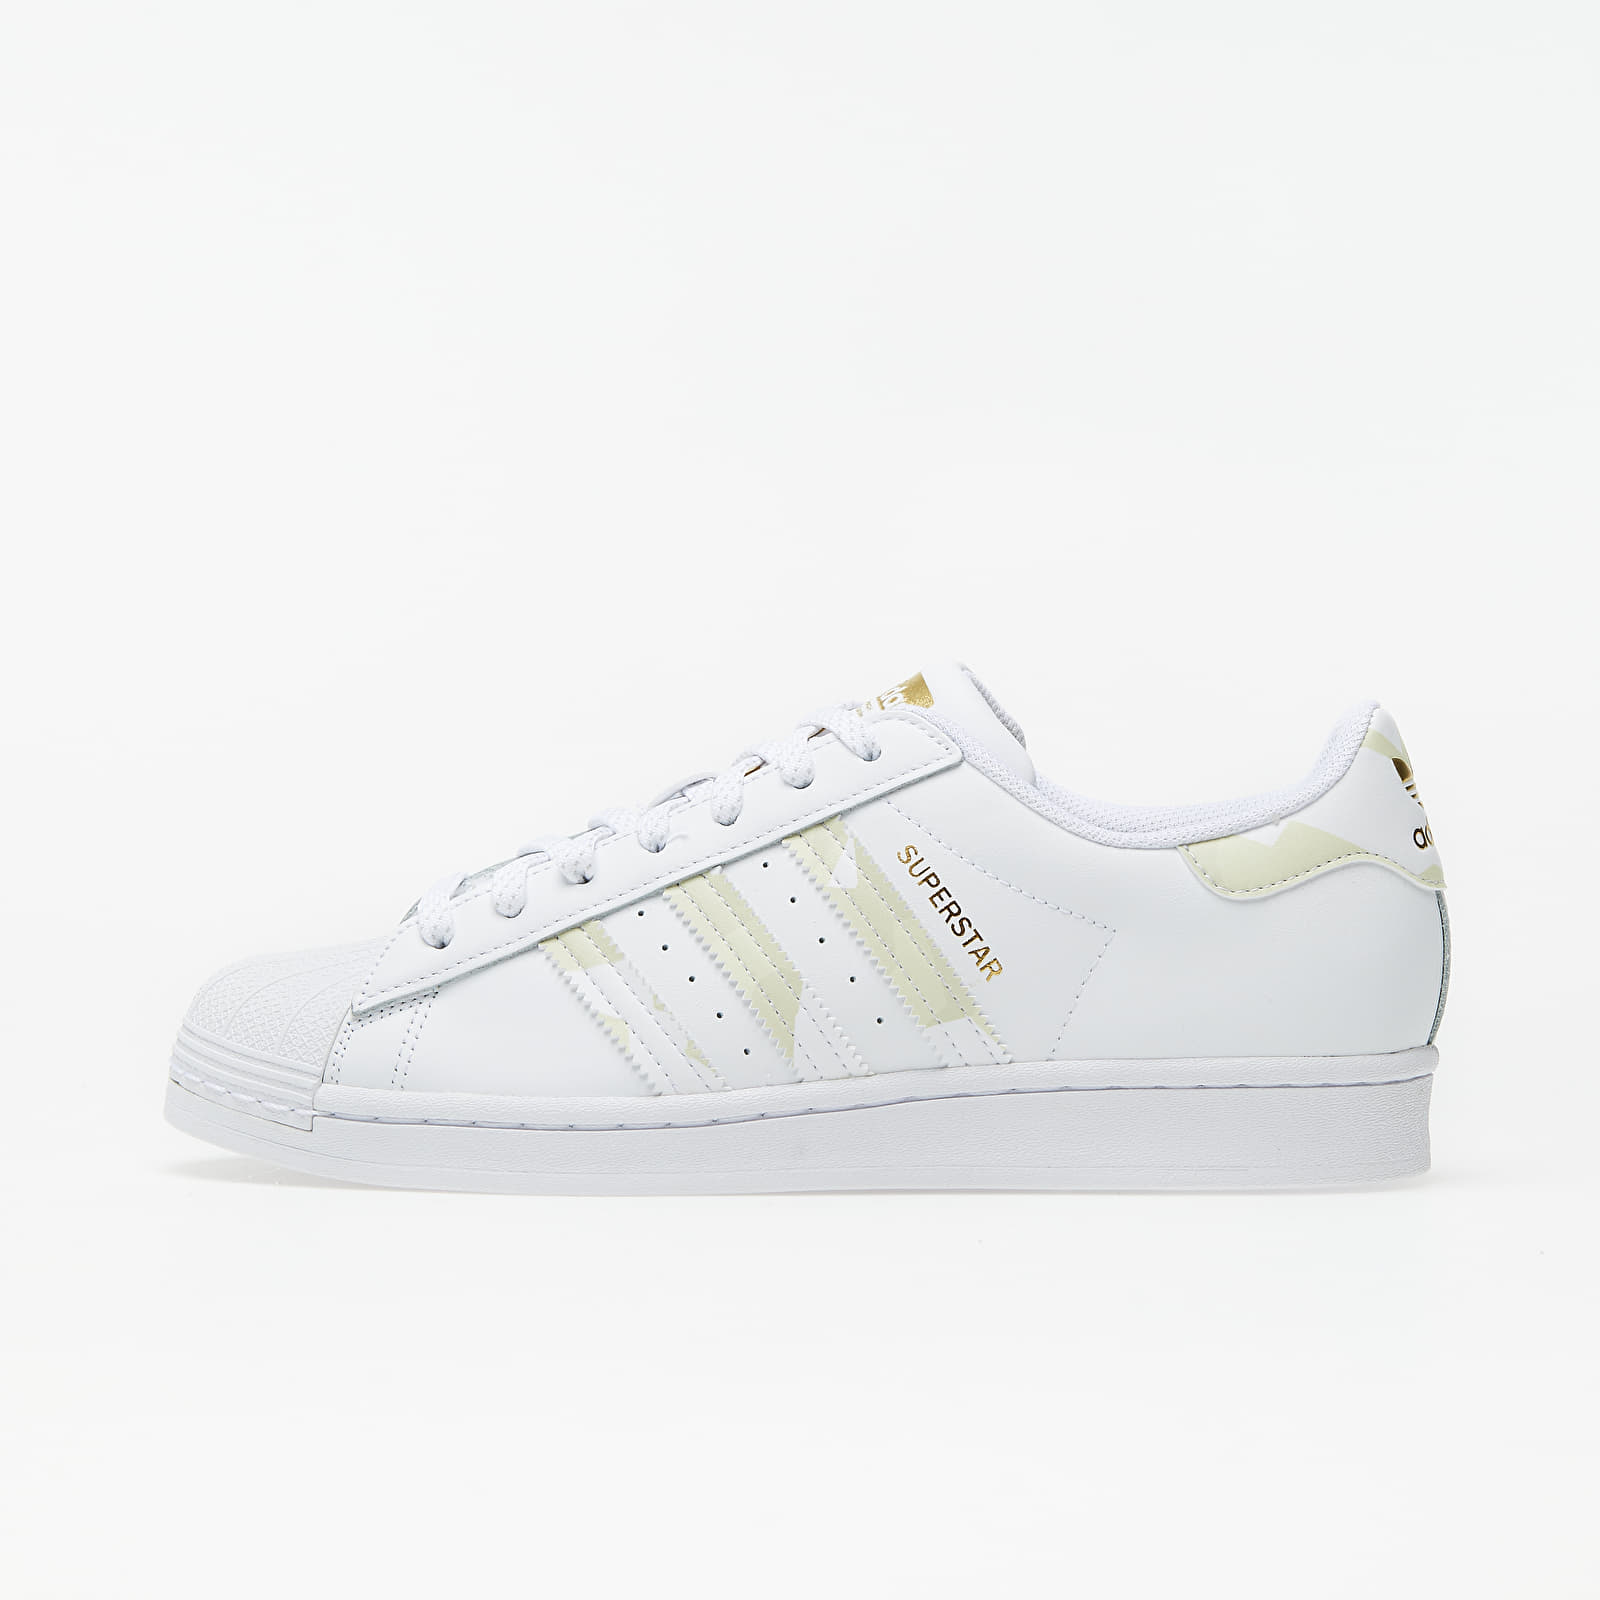 Buty męskie adidas Superstar Ftw White/ Core Black/ Gold Metalic